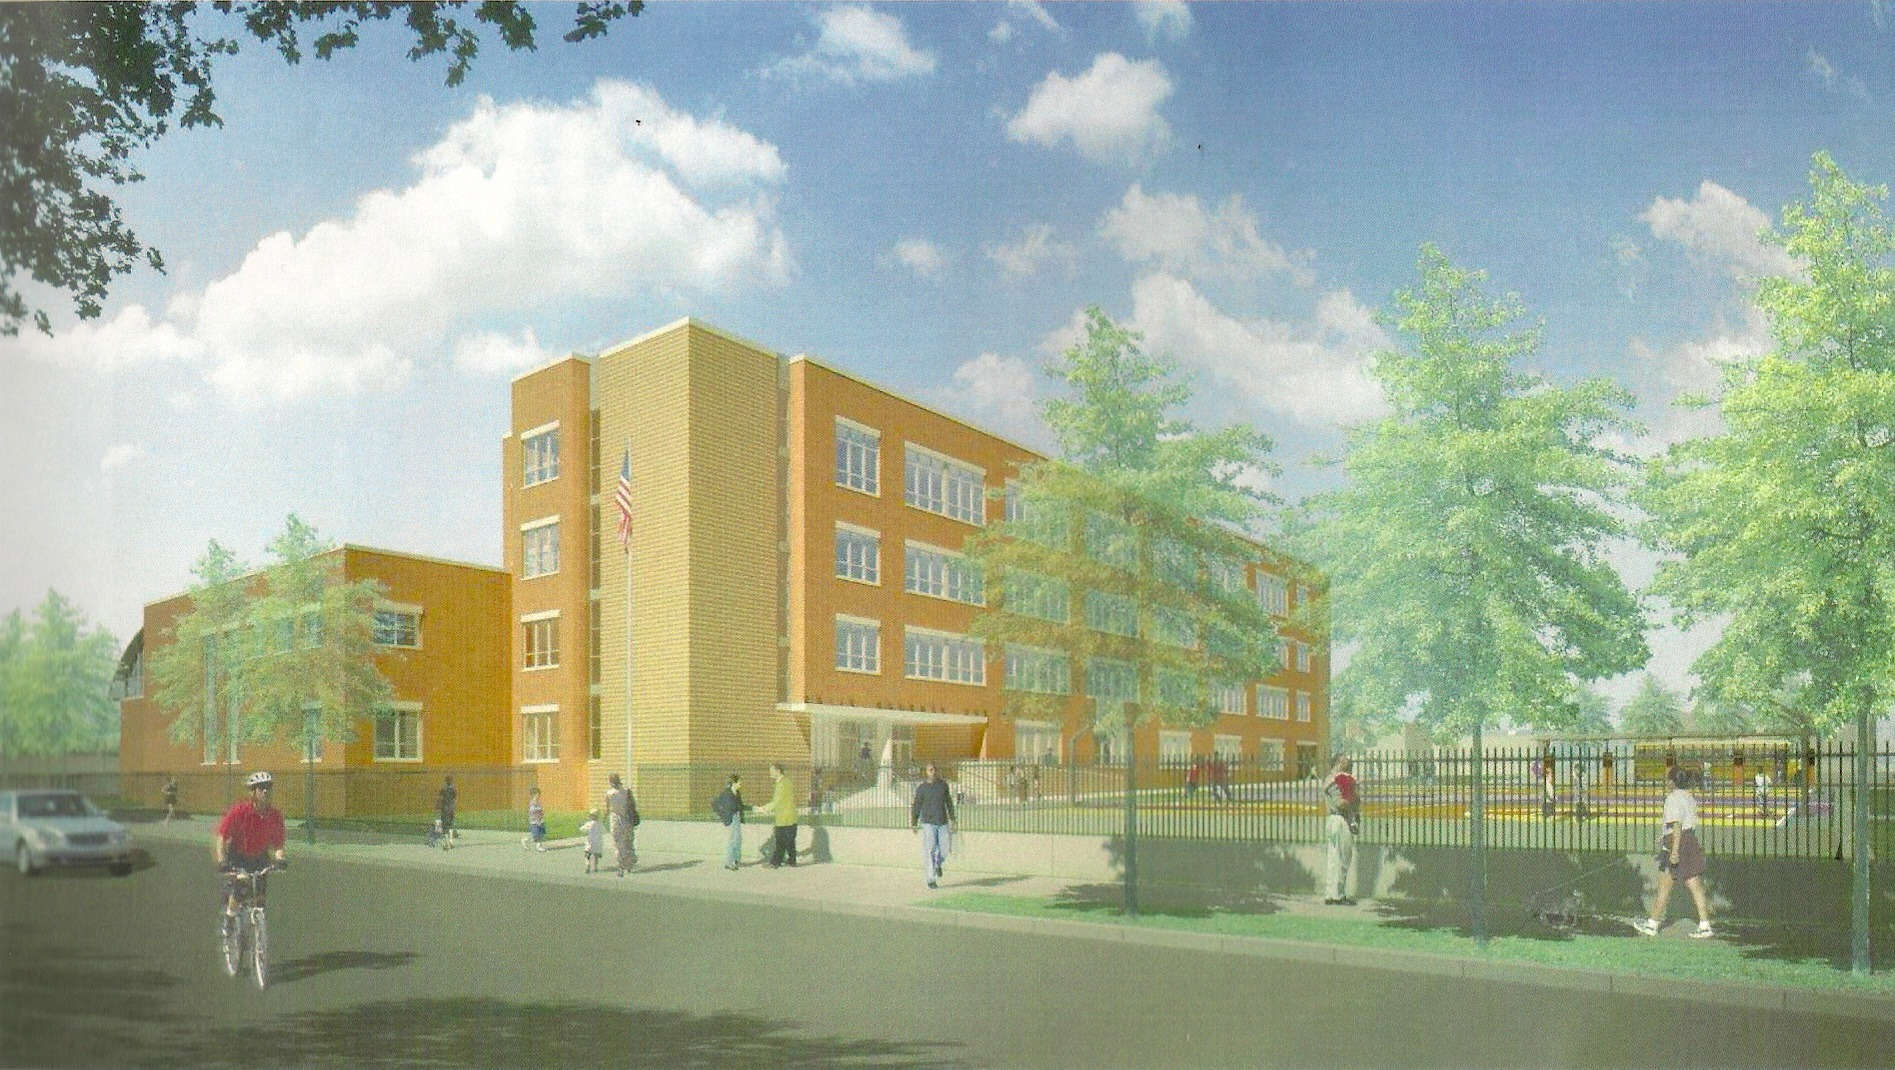 Rendition of PS/IS 48 building